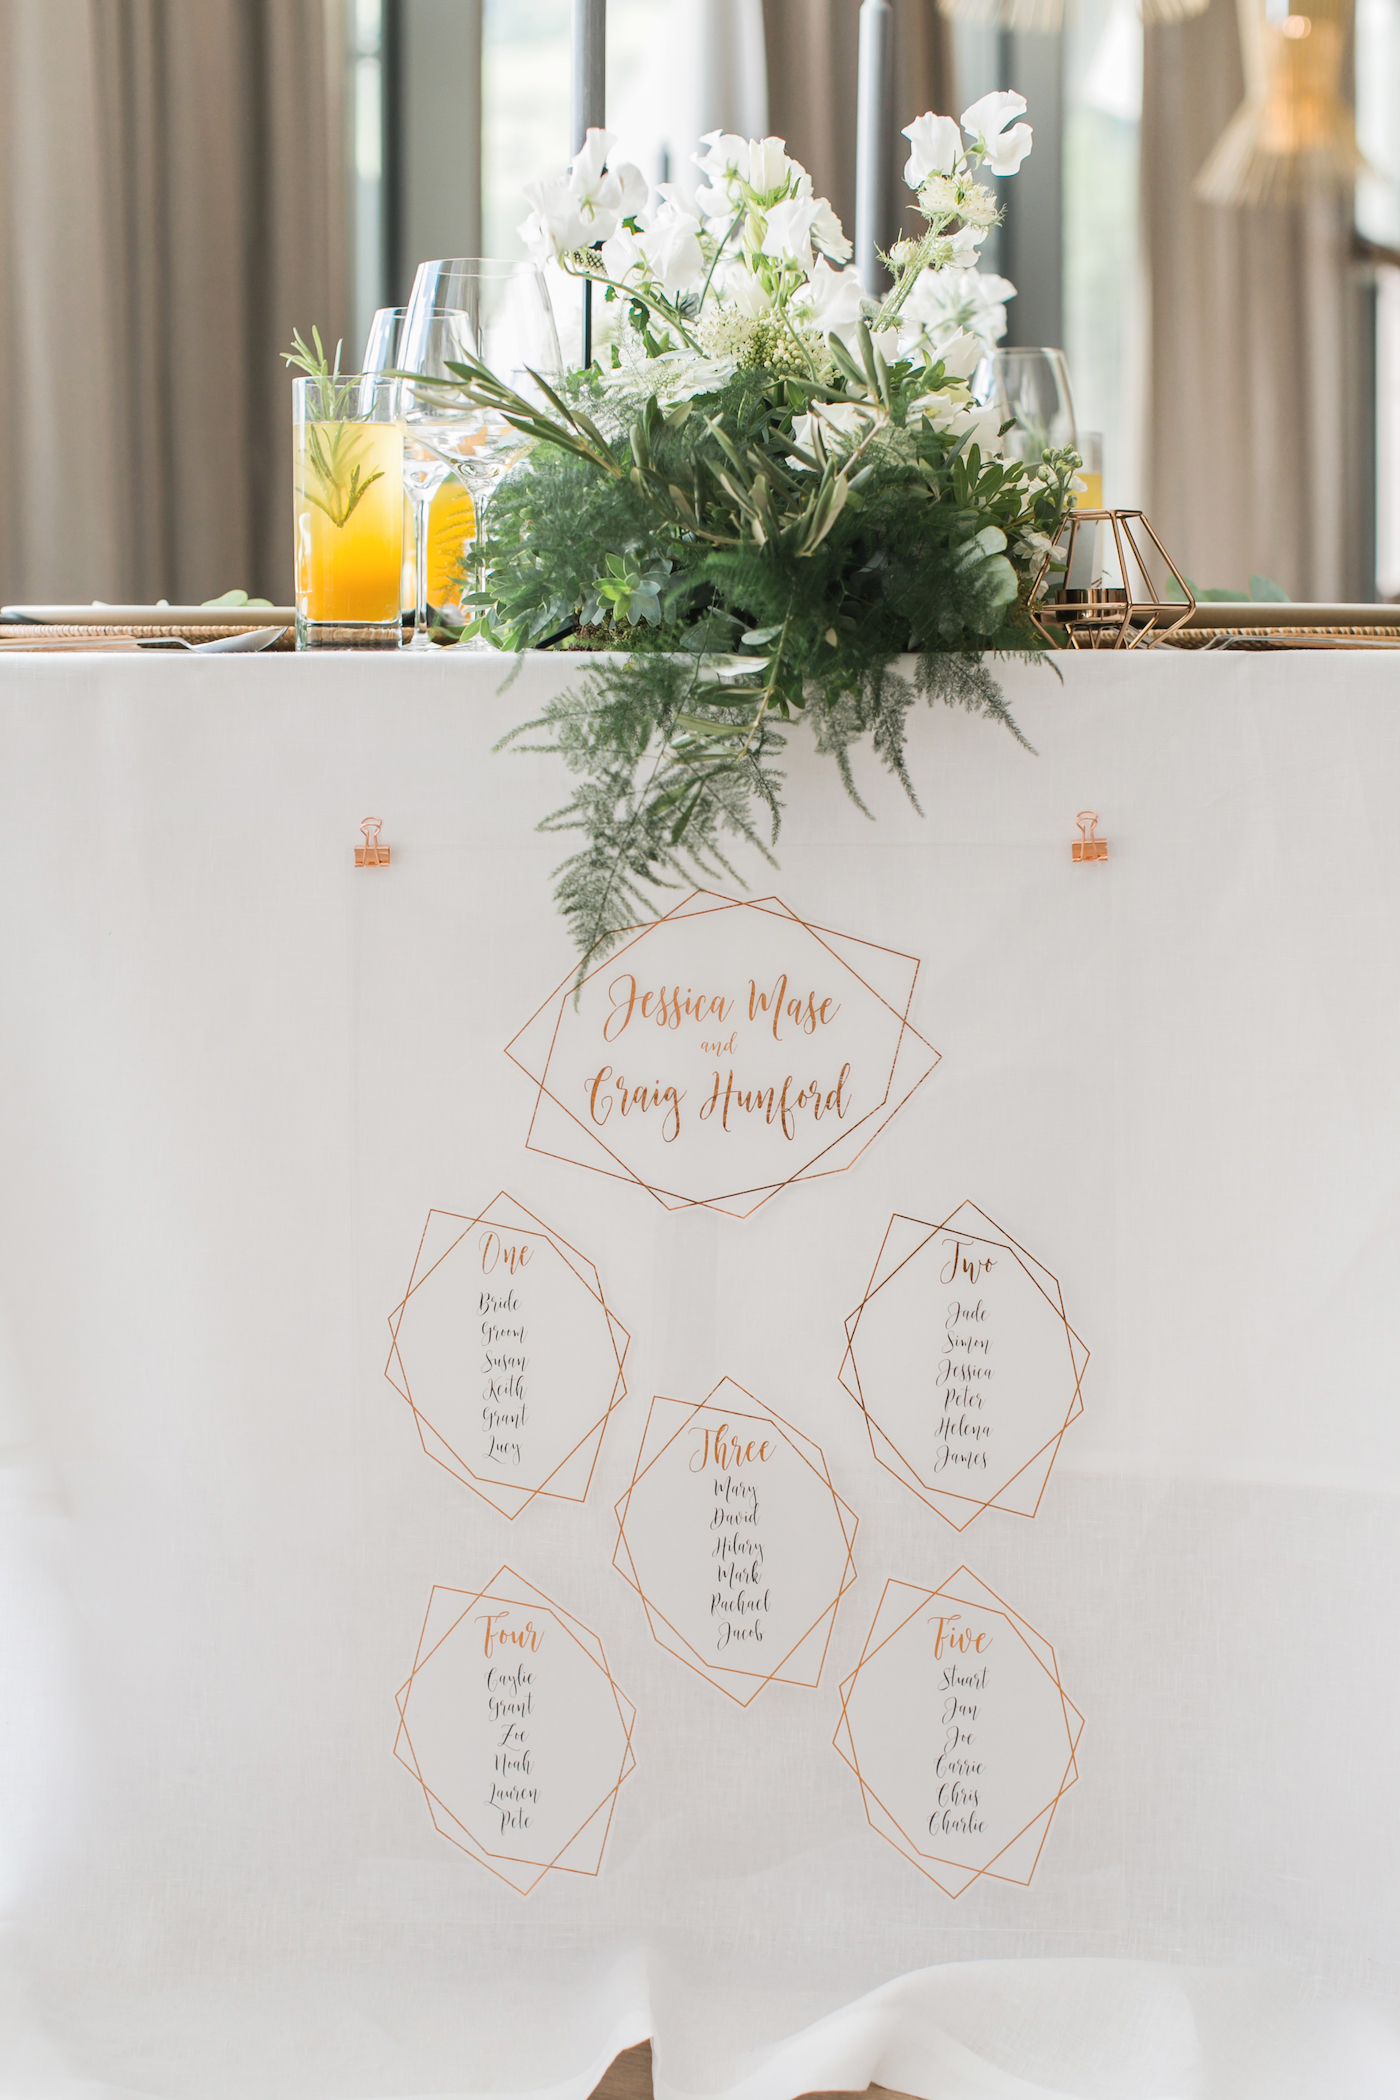 Table plan on acrylic boards and copper foiled details styled by international wedding planner Elisabetta White